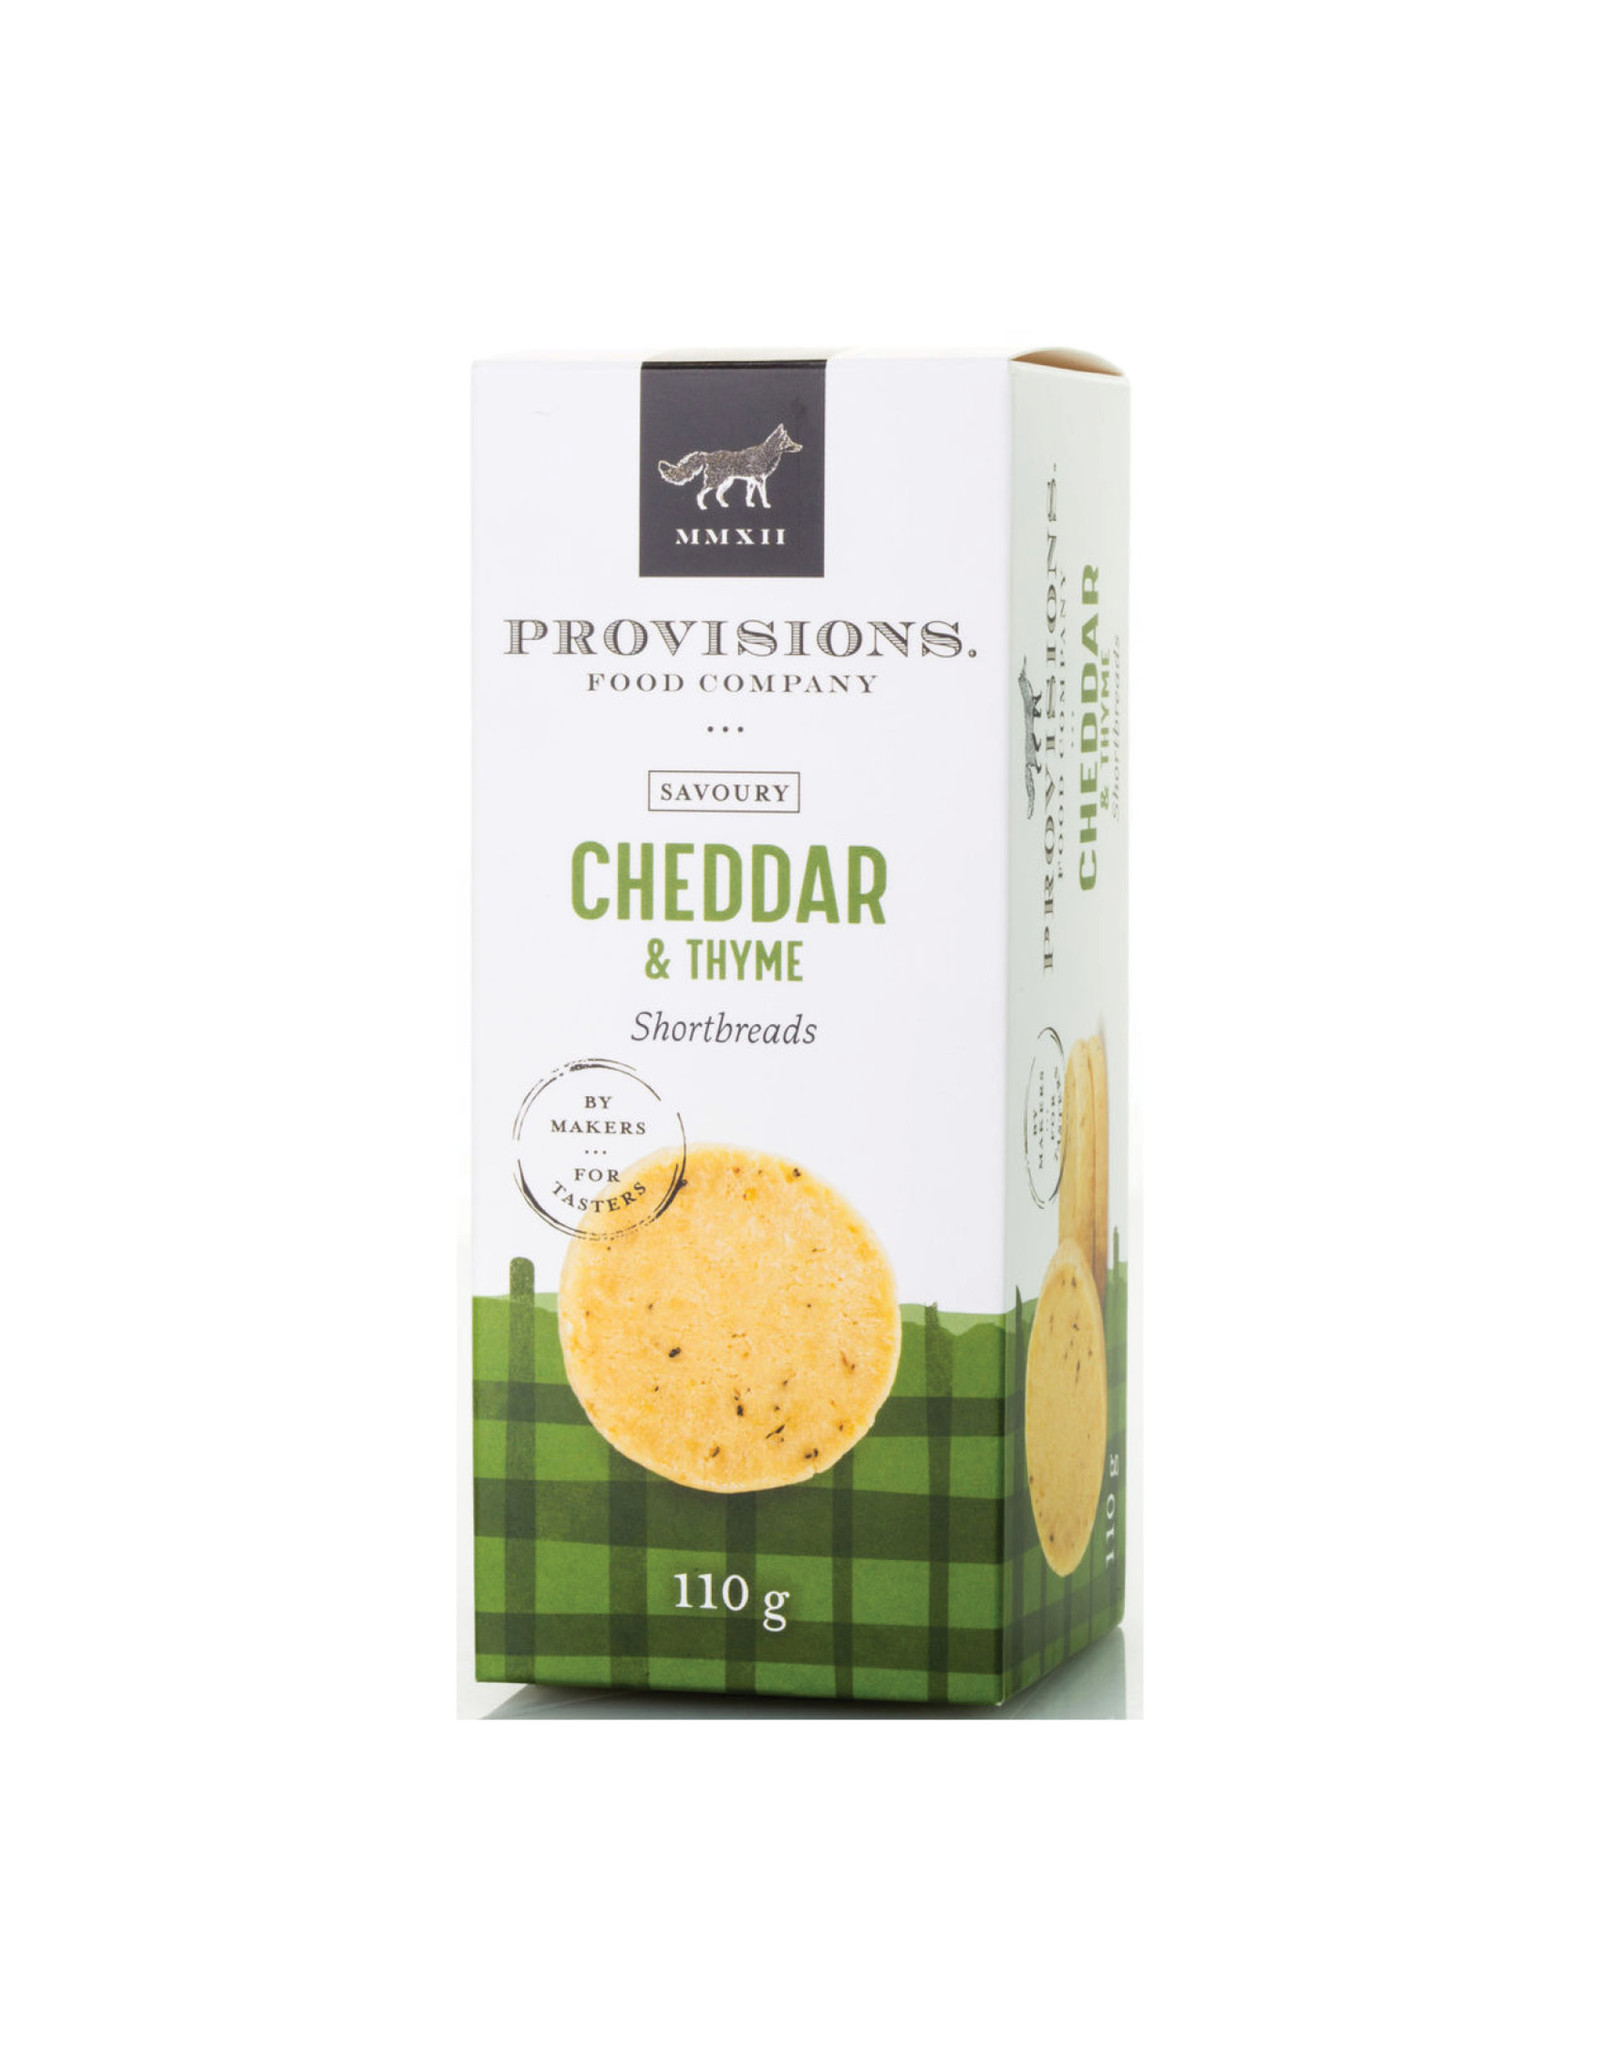 Provisions Food Company - Cheddar & Thyme Shortbreads